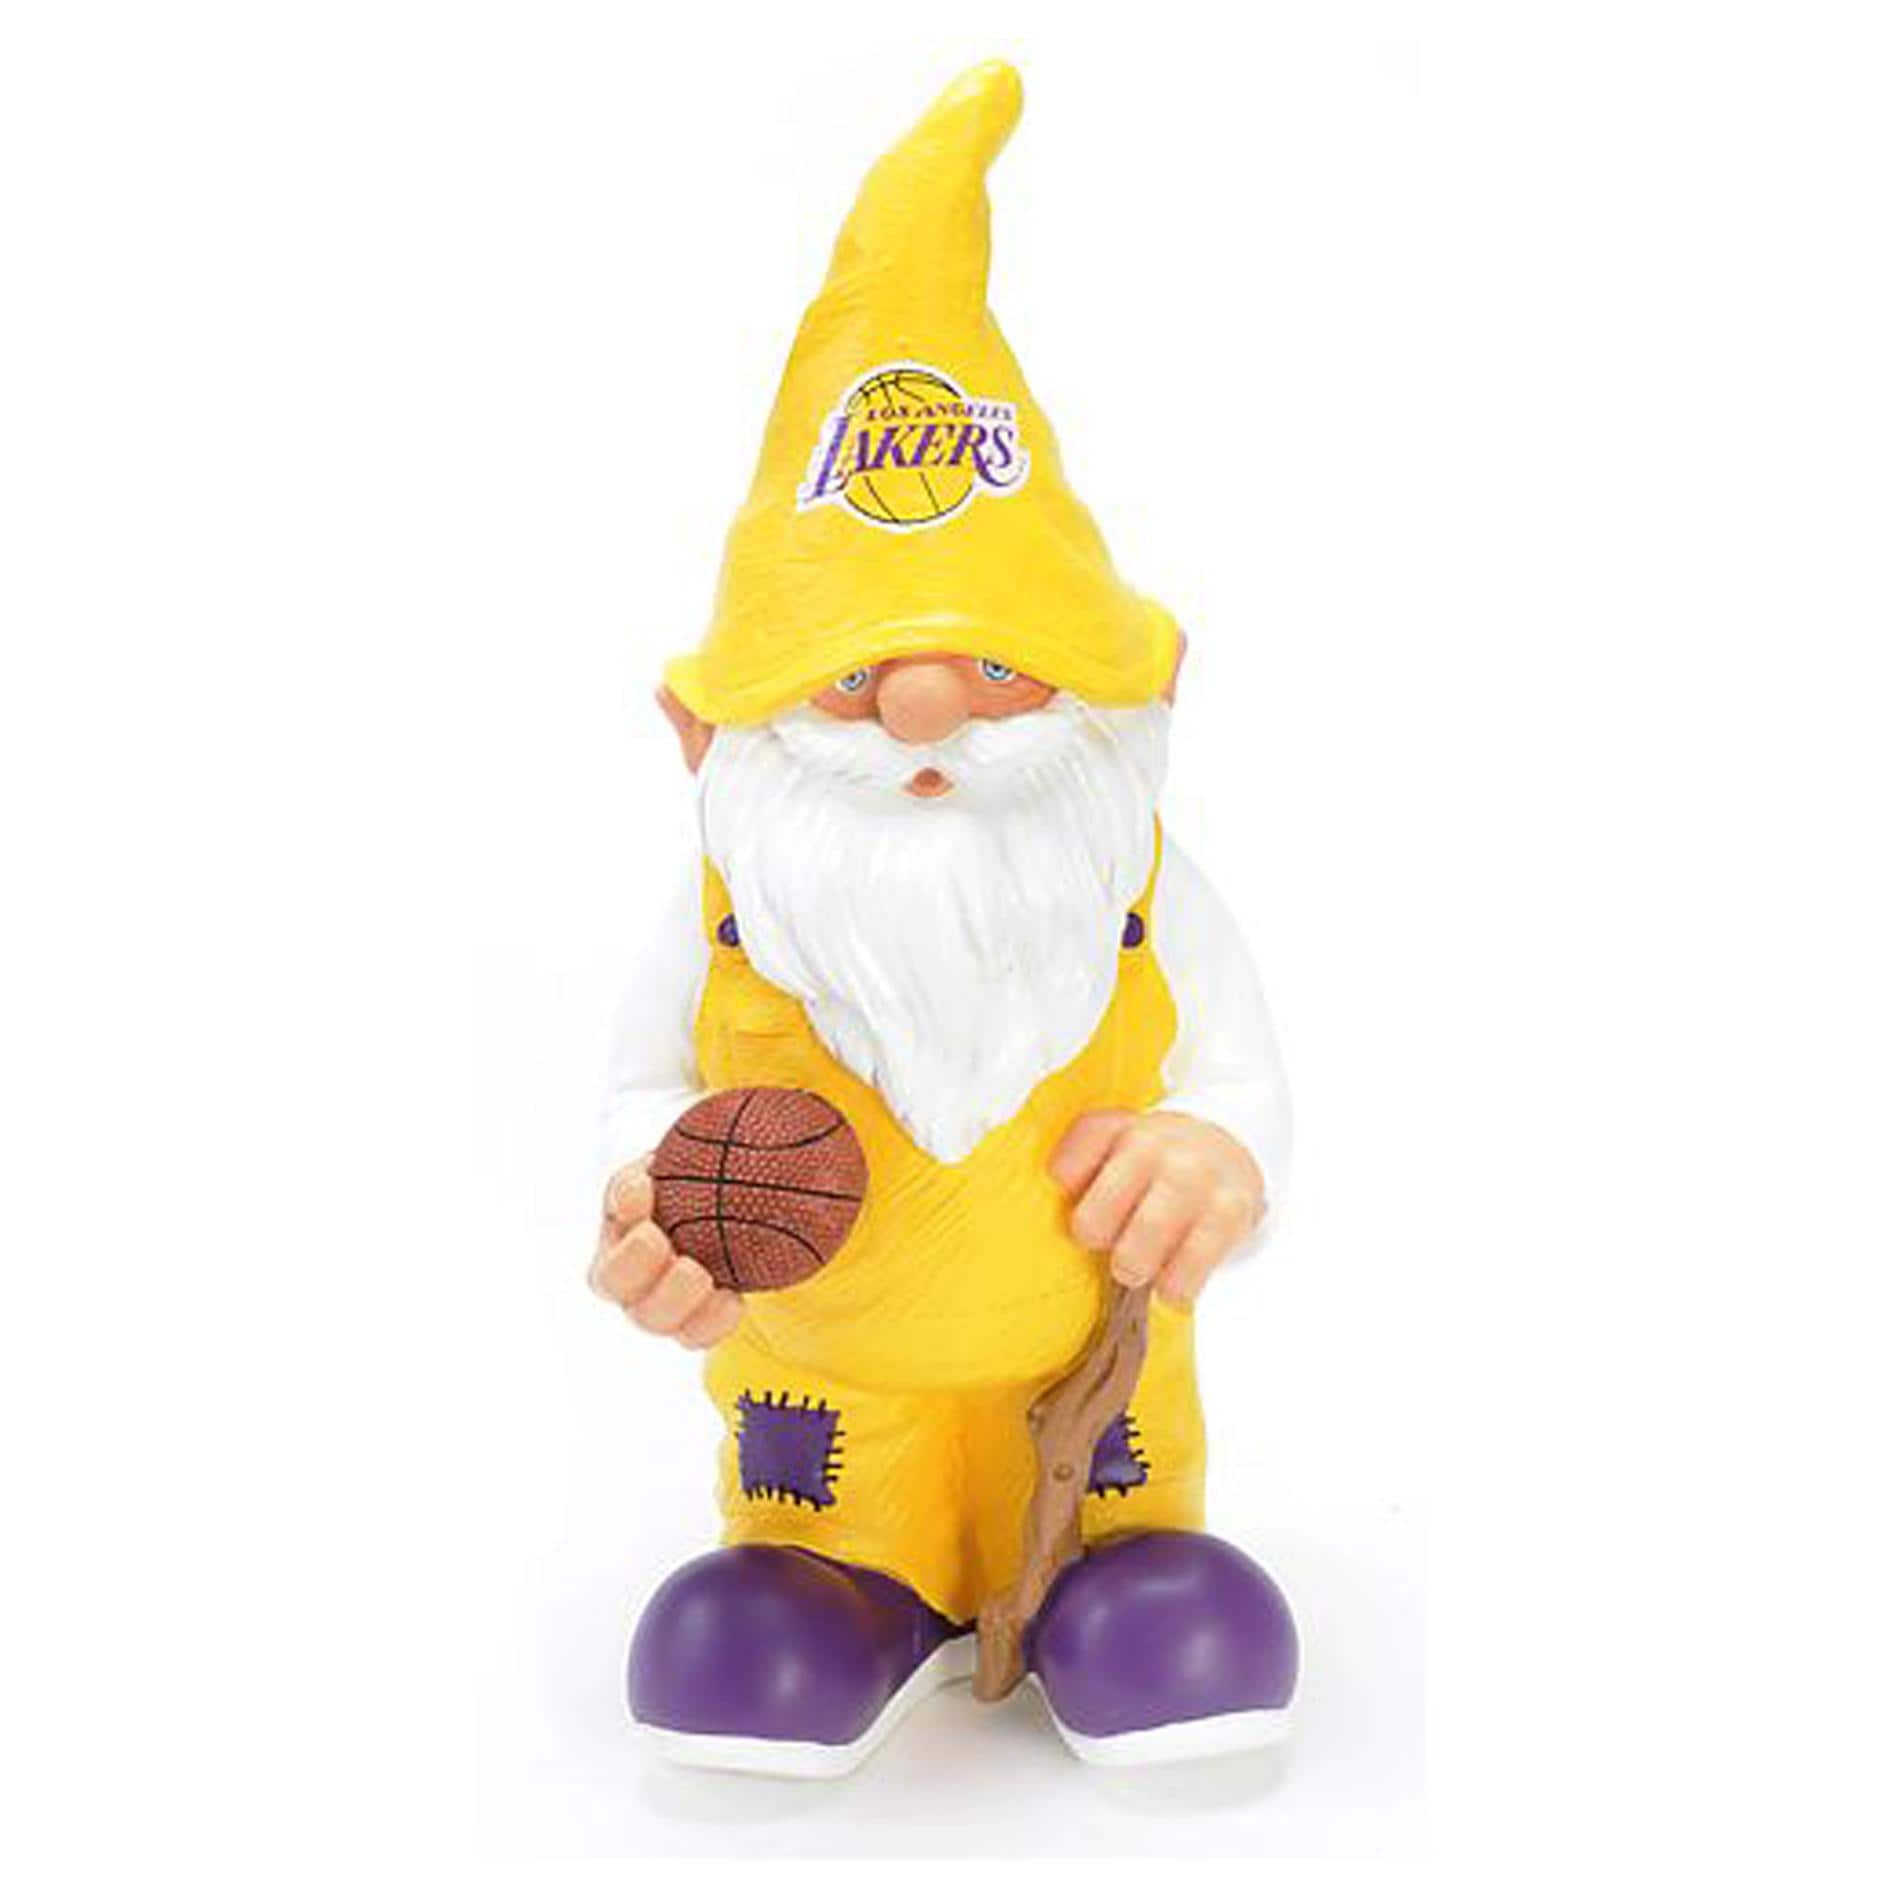 Los Angeles Lakers 11-inch Garden Gnome